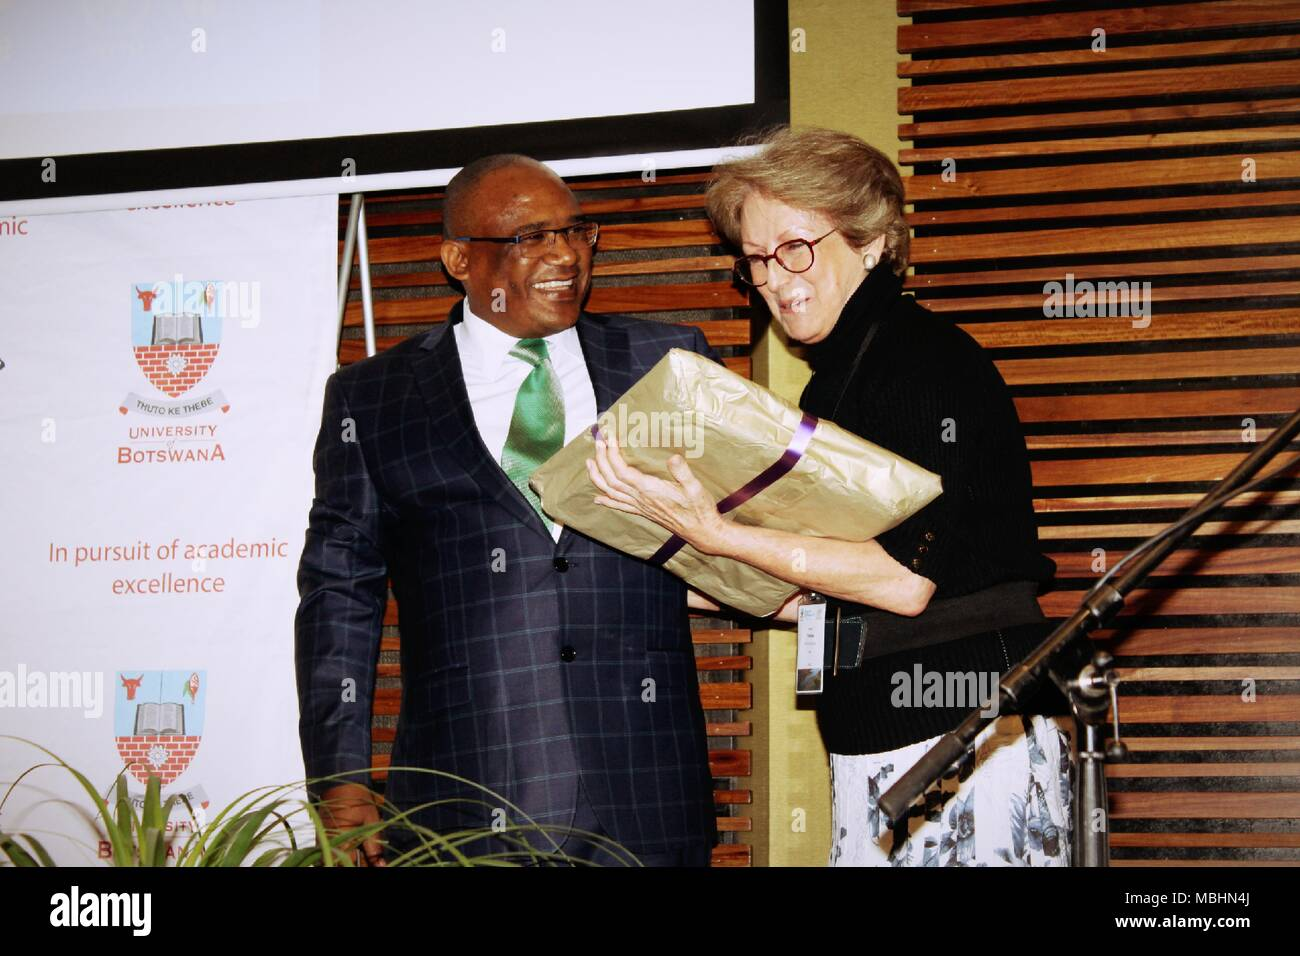 Gaborone, Botswana. 9th Apr, 2018. Professor Thelma Krug, Vice Chair of the Inter-governmental Panel on Climate Change (IPCC) receiving a gift from Professor David Norris, Vice Chancellor of the University of Botswana today after delivering a speech IPCC Assessments, during the official opening of the 4th Lead Author Meeting (LAM4) for the Special Report on: Global Warming of 1.5 degrees Celsius. The theme for this year is ''˜The Paris Agreement Ambition to limit global warming to well below 20C and the IPCC meeting in Botswana. The event was held at the University of Botswana's Internatio - Stock Image